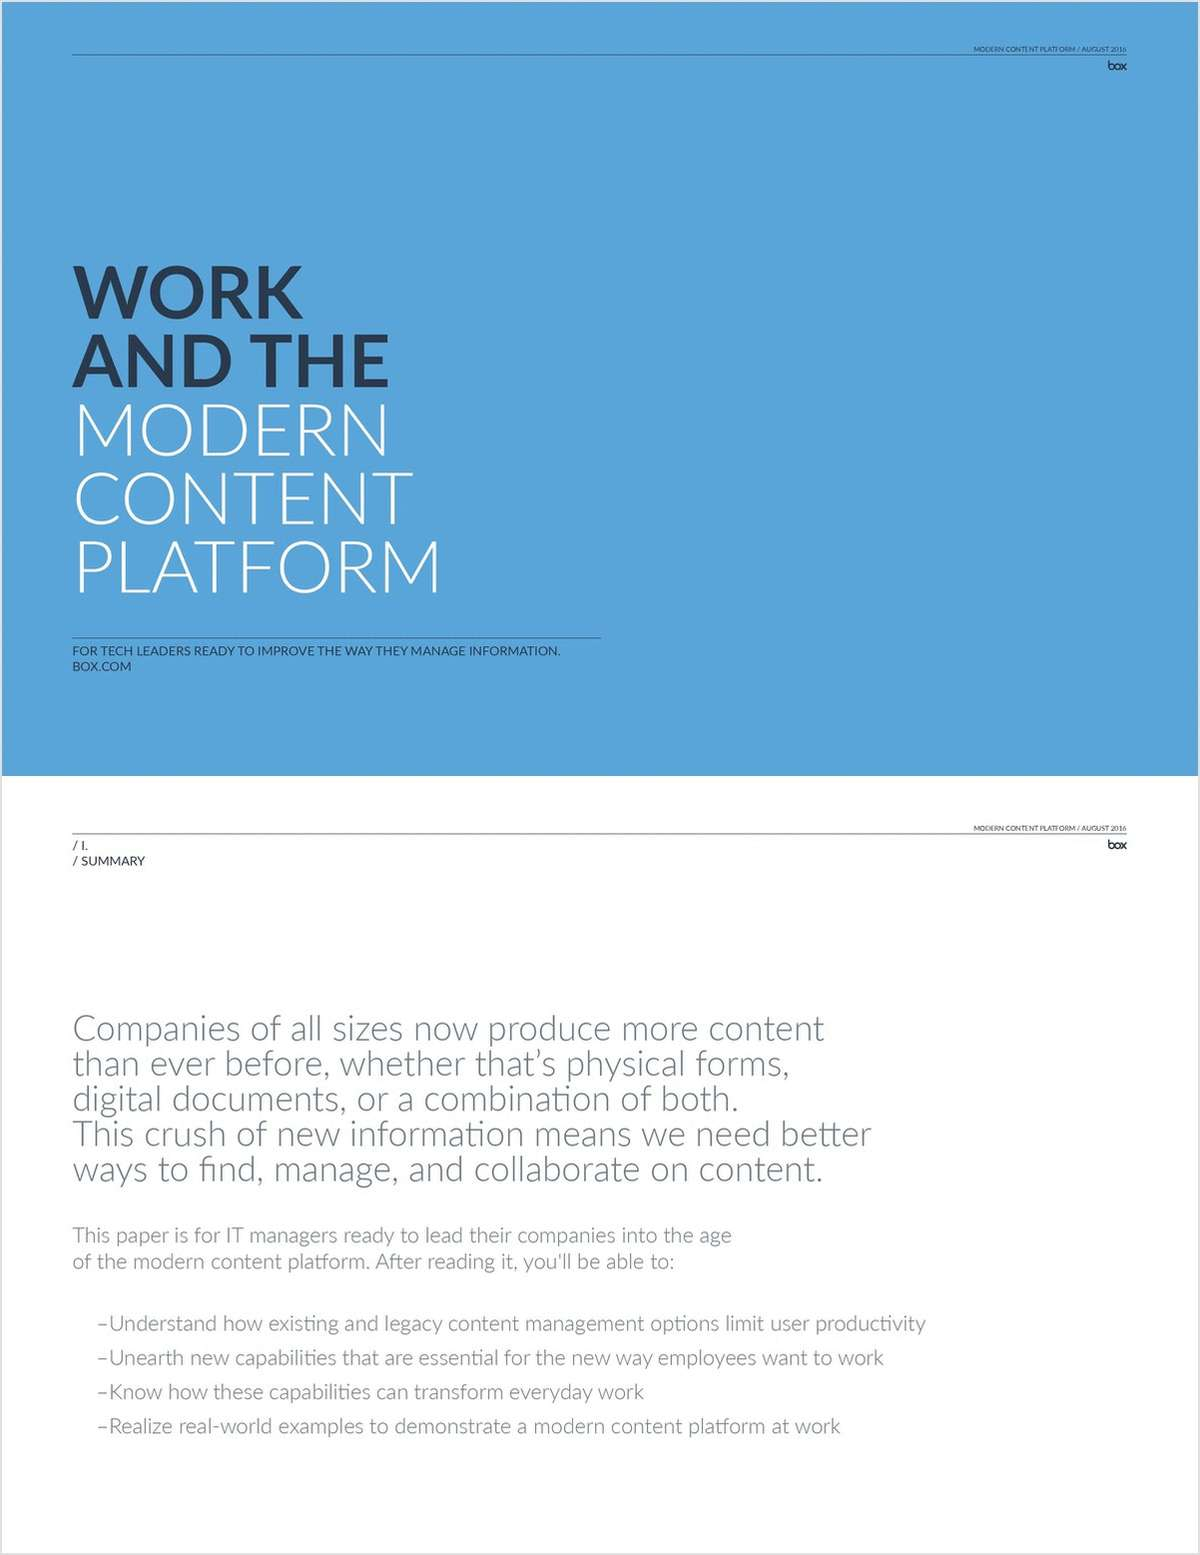 Work and the Modern Content Platform